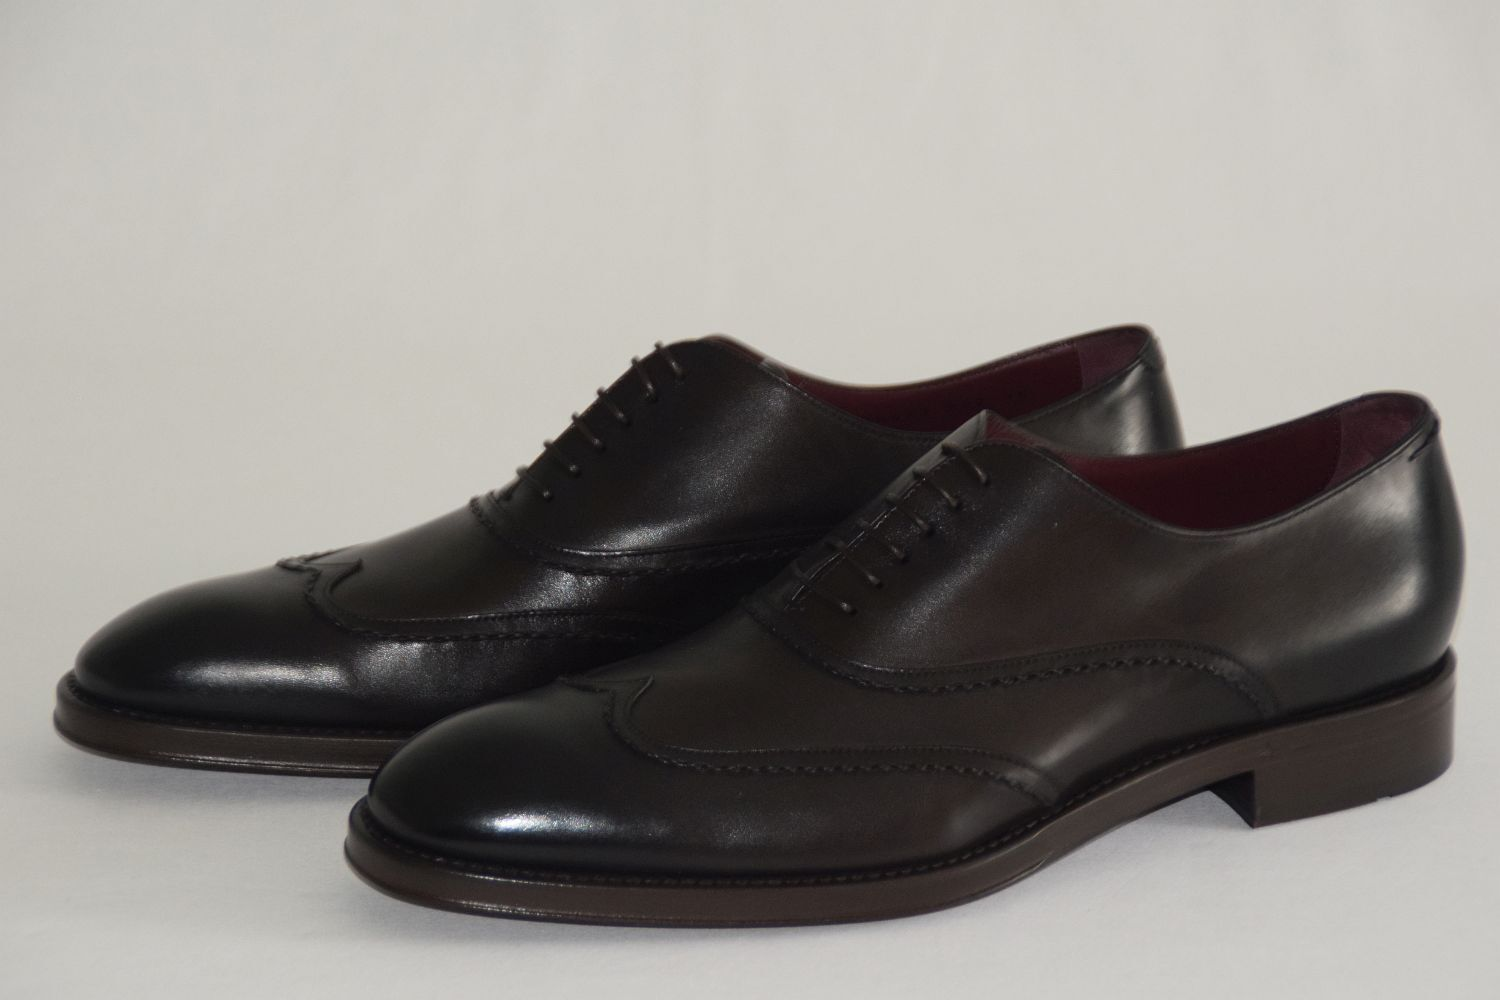 Hugo BOSS tailorosso Business Scarpe, Tg. 44  US 11, Dark Marroneee